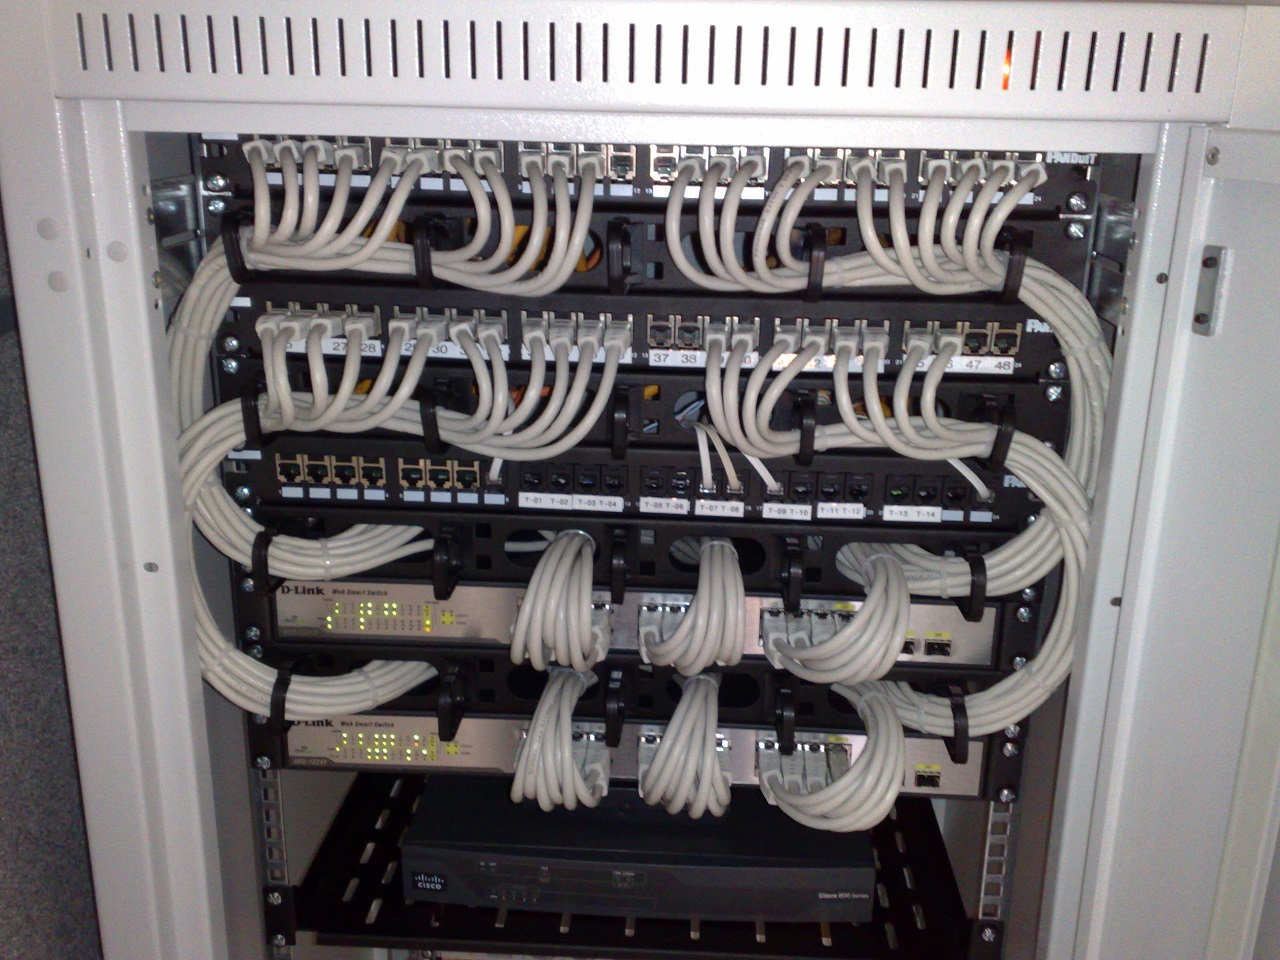 Patch Cable Wikipedia Wiring Diagram Furthermore Cat 5 Pdf On 5e 6 A Couple Of Managed Gigabit Ethernet Rackmount Switches Connected To The Ports Few Panels Using Category Cables All Equipment